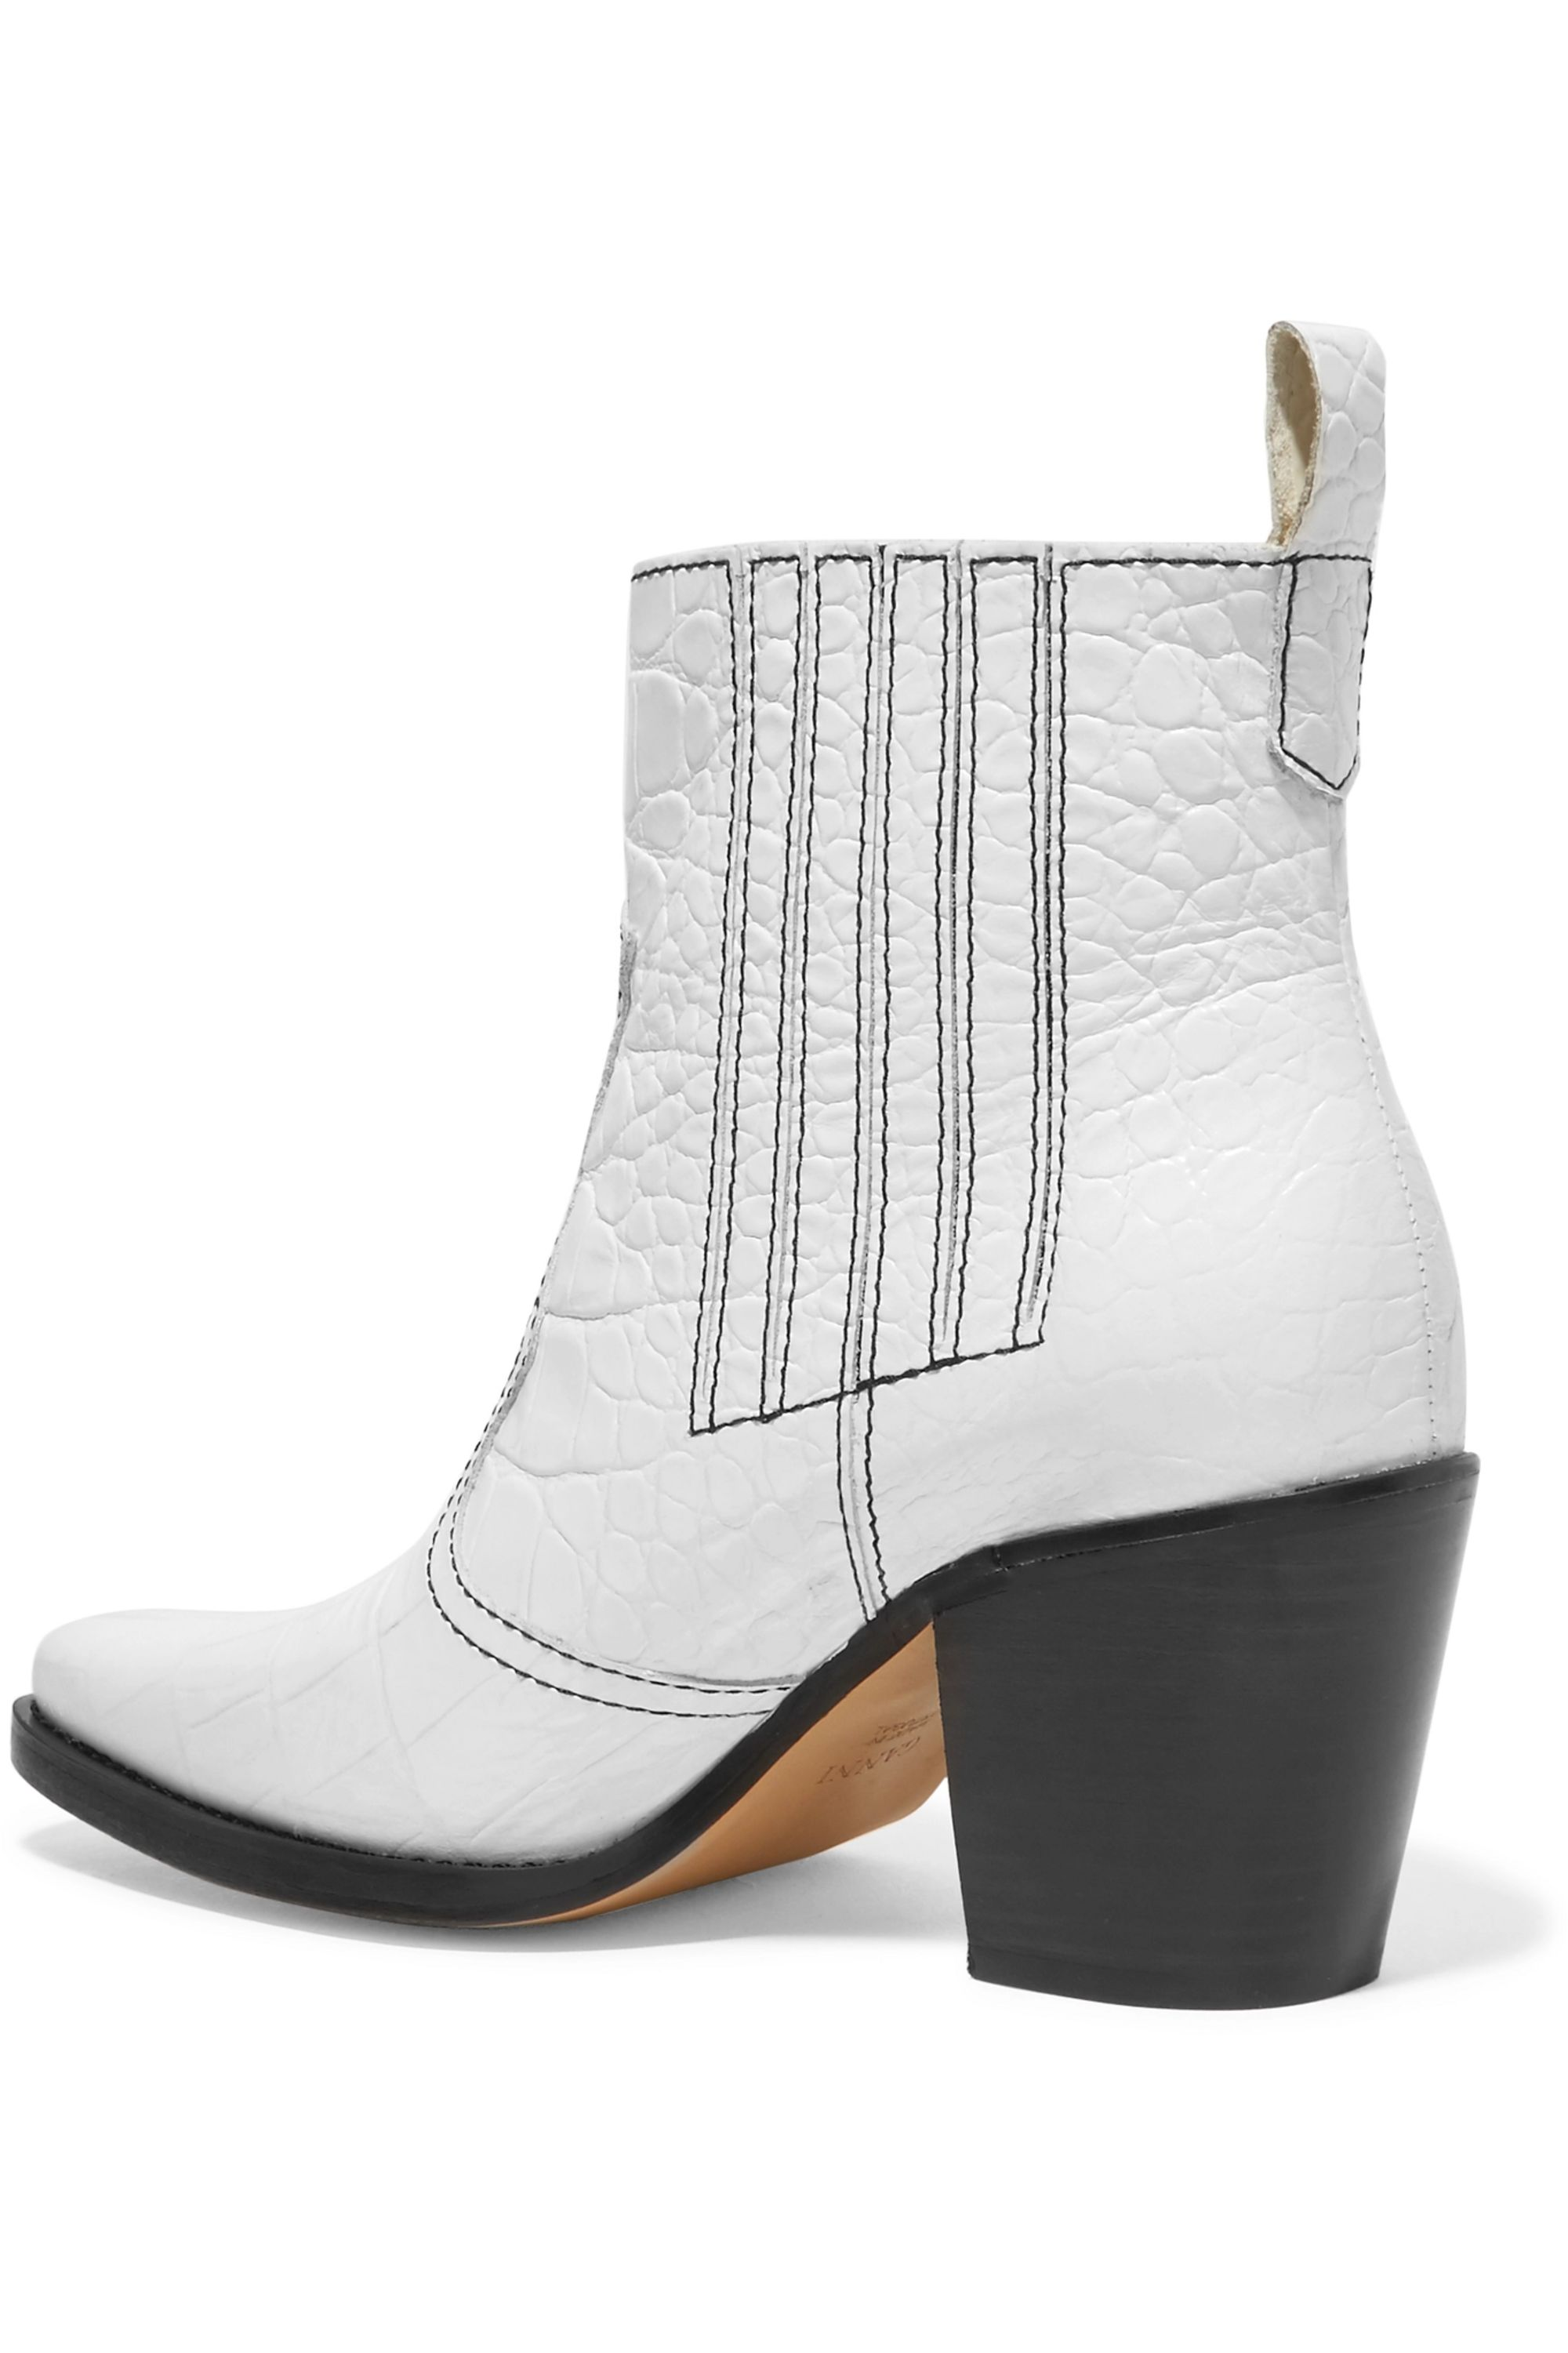 GANNI Callie textured-leather ankle boots